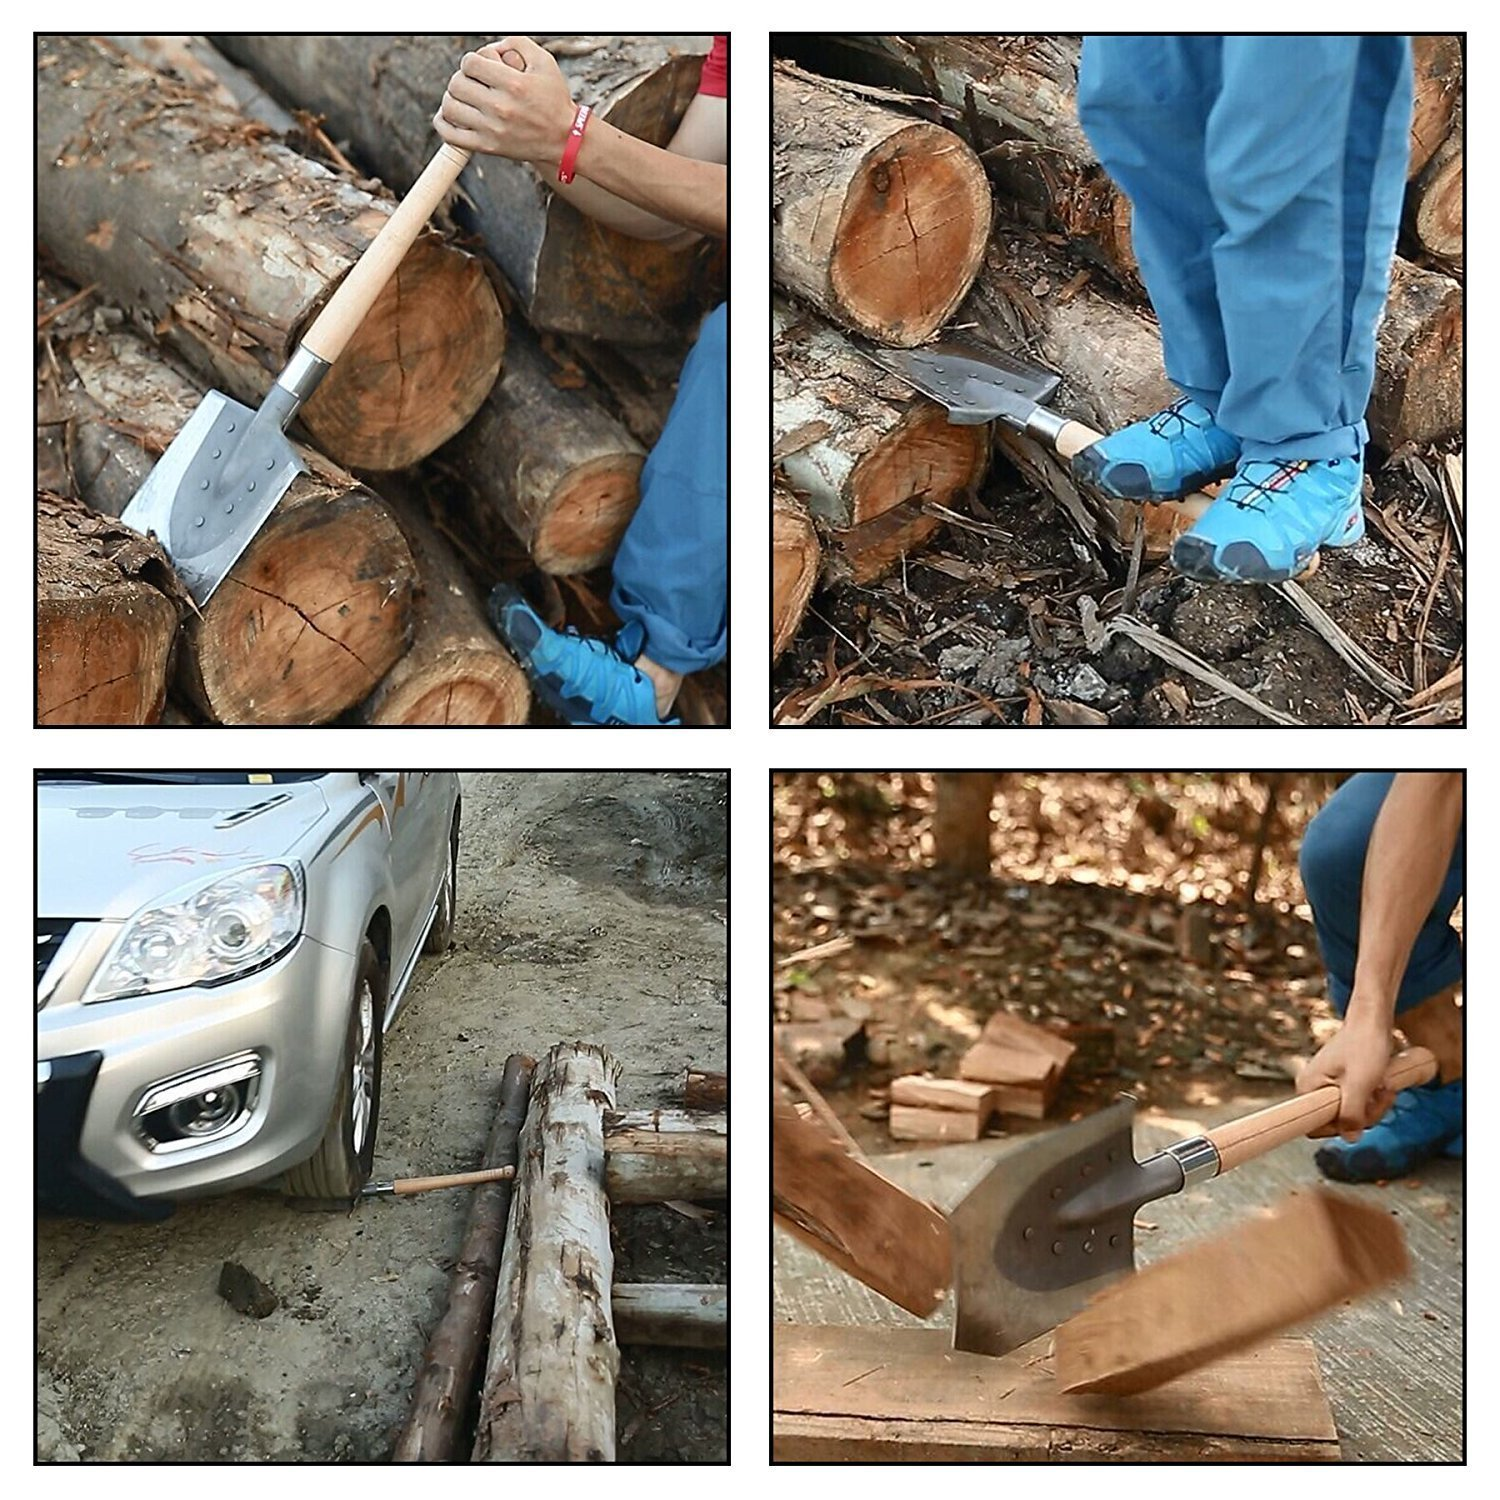 FiveJoy Portable Trench Shovel for Gardening, Camping, Metal Detect, Off-Road, Emergency (J2) - Hard Wood Handle, High Carbon Steel Blade - Excel in Digging, Chopping, Prying - Great to Keep in Trunk